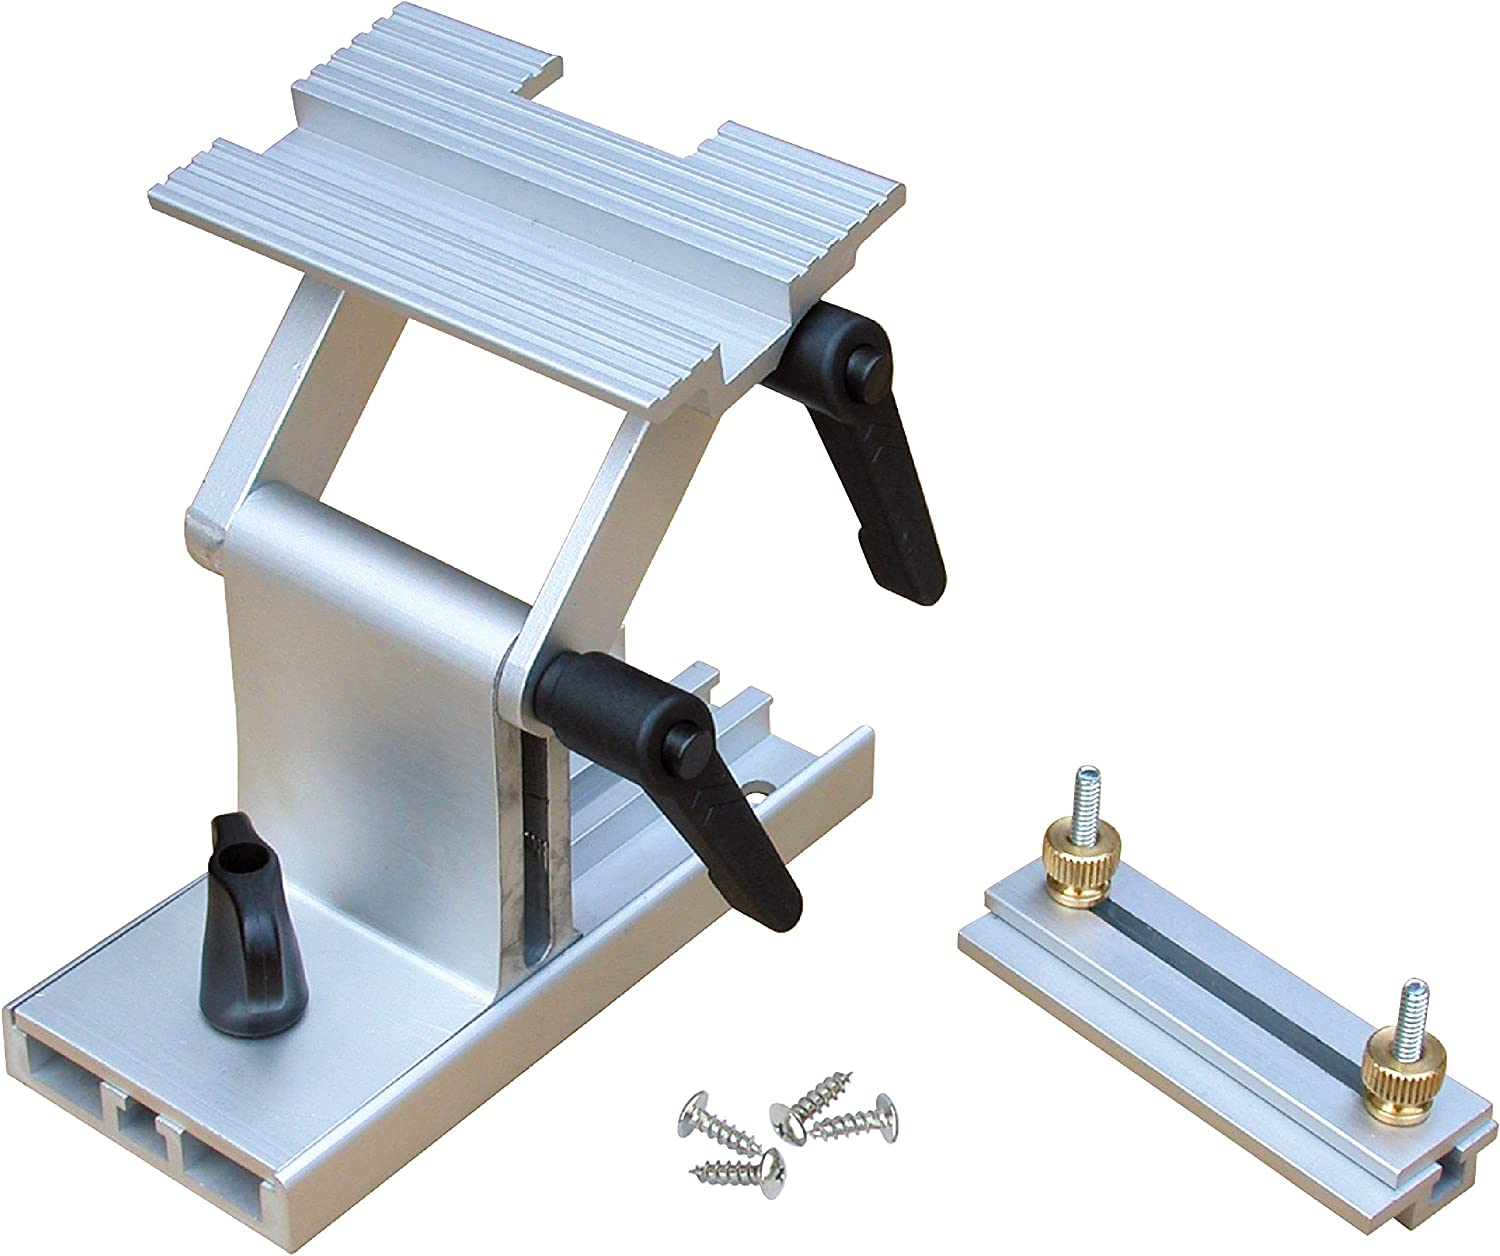 Adjustable  Tool Rest Sharpening Jig For 6 Inch Or 8 Inch Bench Grinders And San